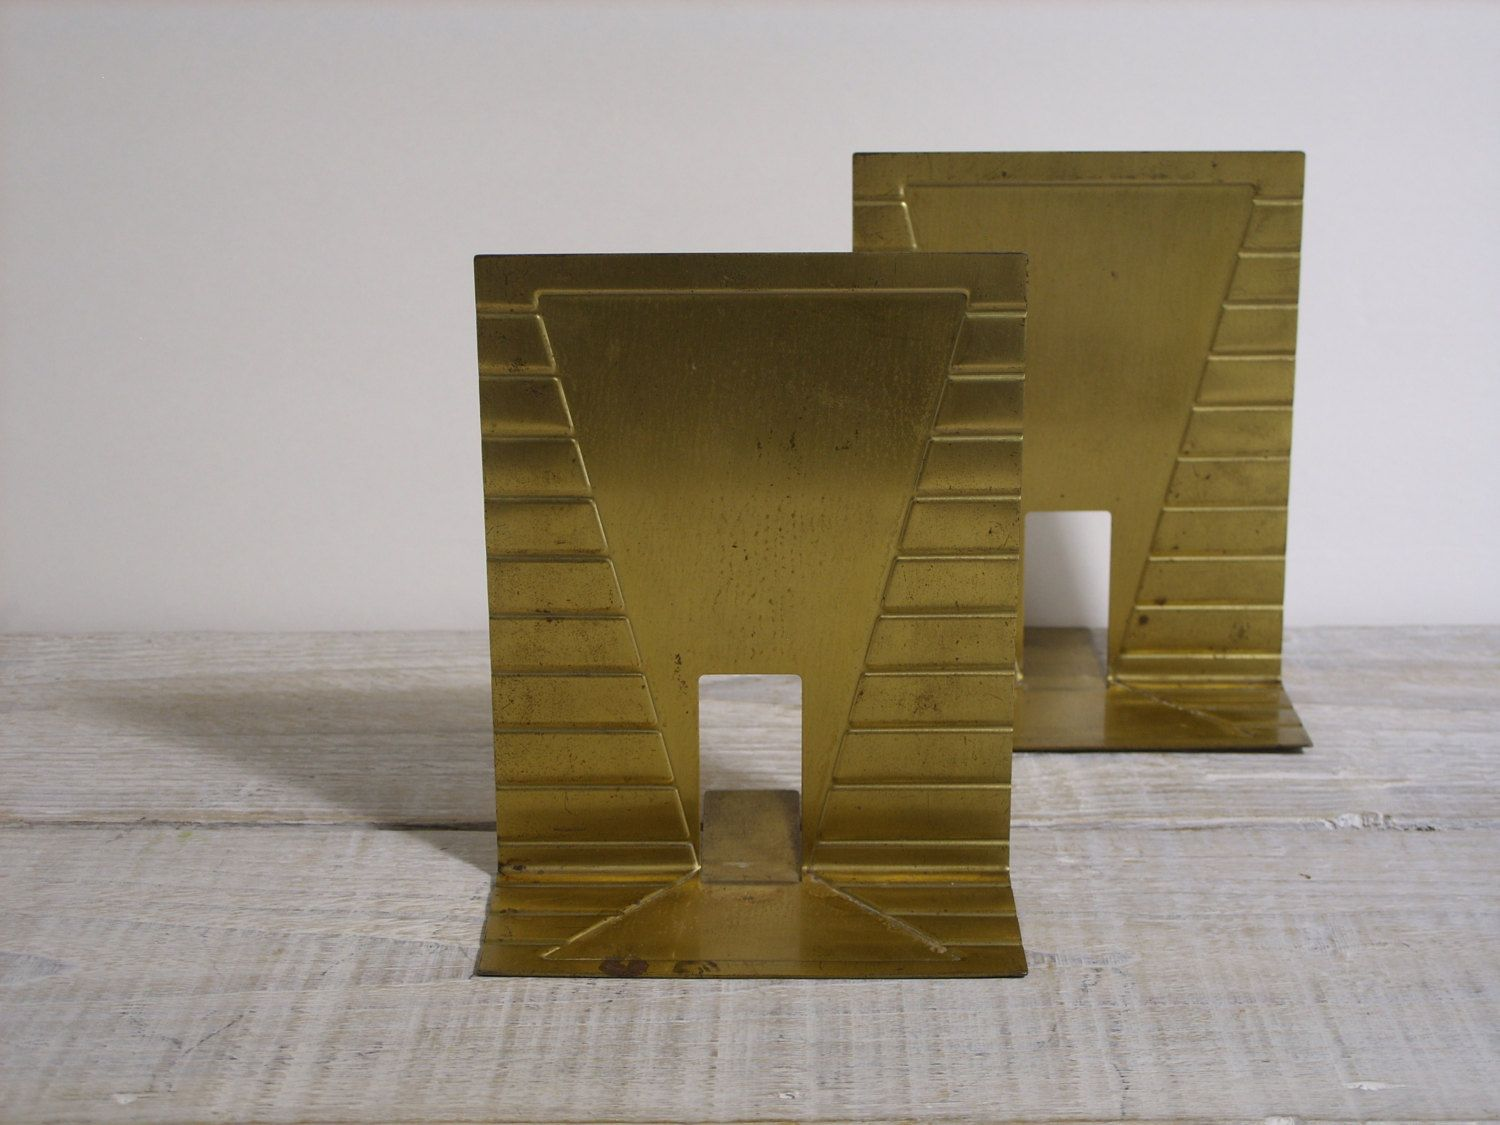 Vintage Art Deco Book Ends ~ Set Of 2 Gold Tone Rustic Metal Library  Bookends ~ Retro Office Decor